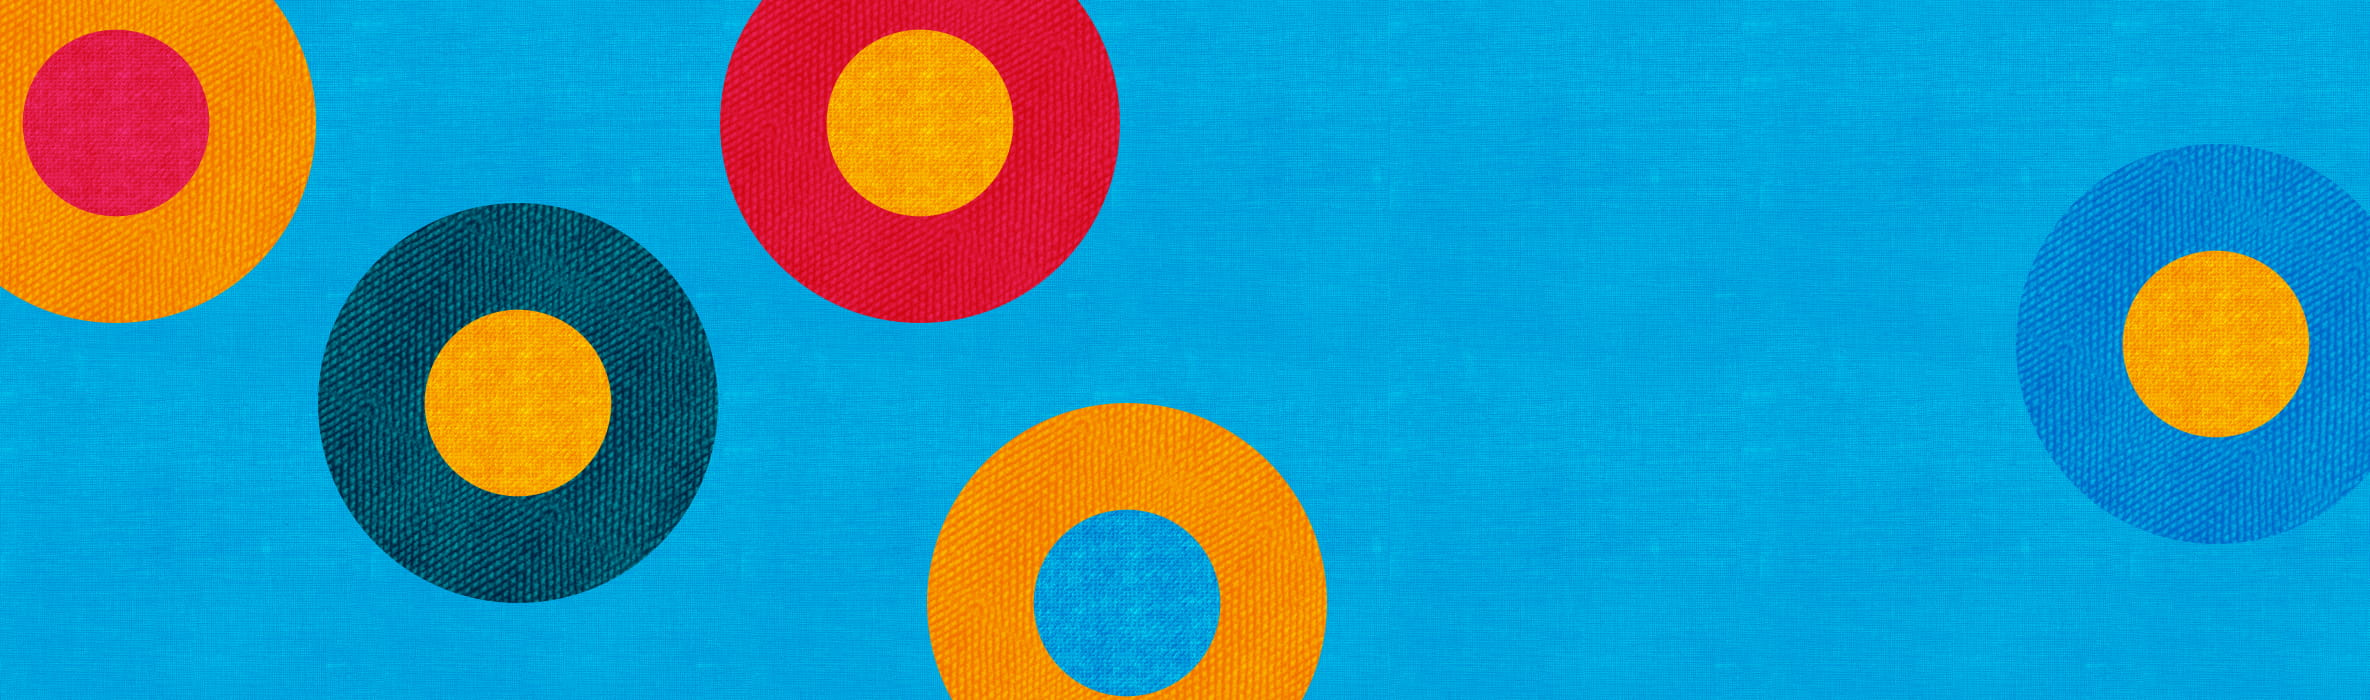 multicoloured circles on a blue background